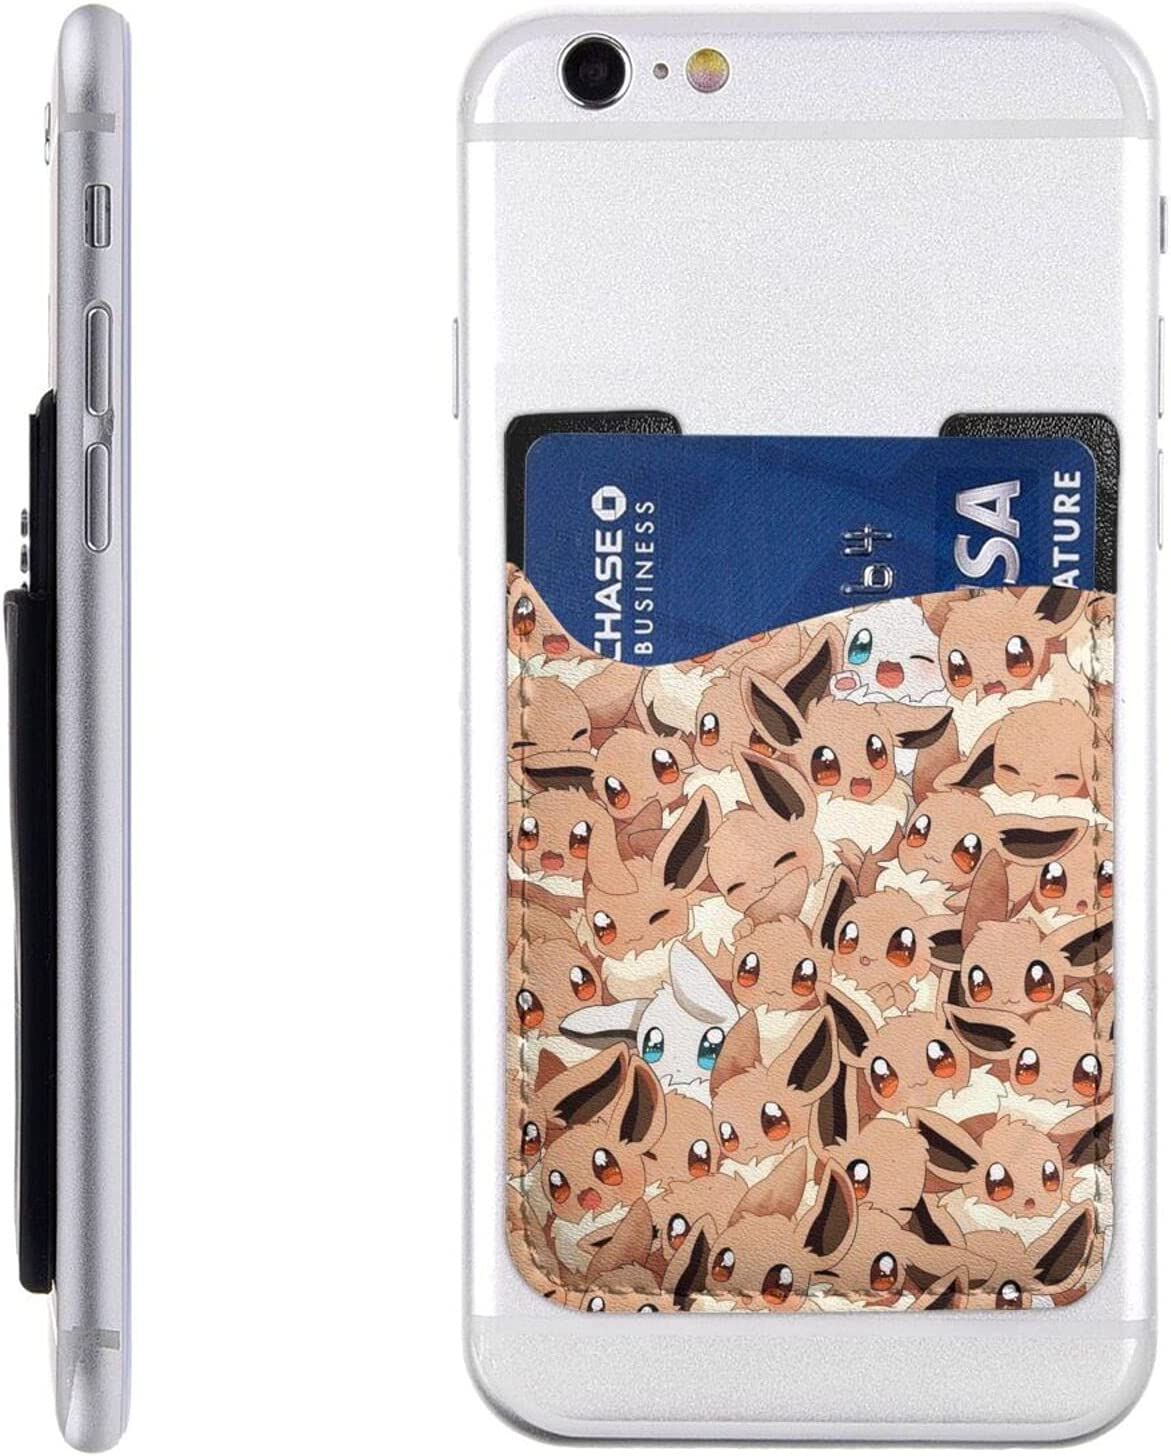 Mobile Phone Card Holder Adhesive 2021 model Cell Walle Atlanta Mall Stick On